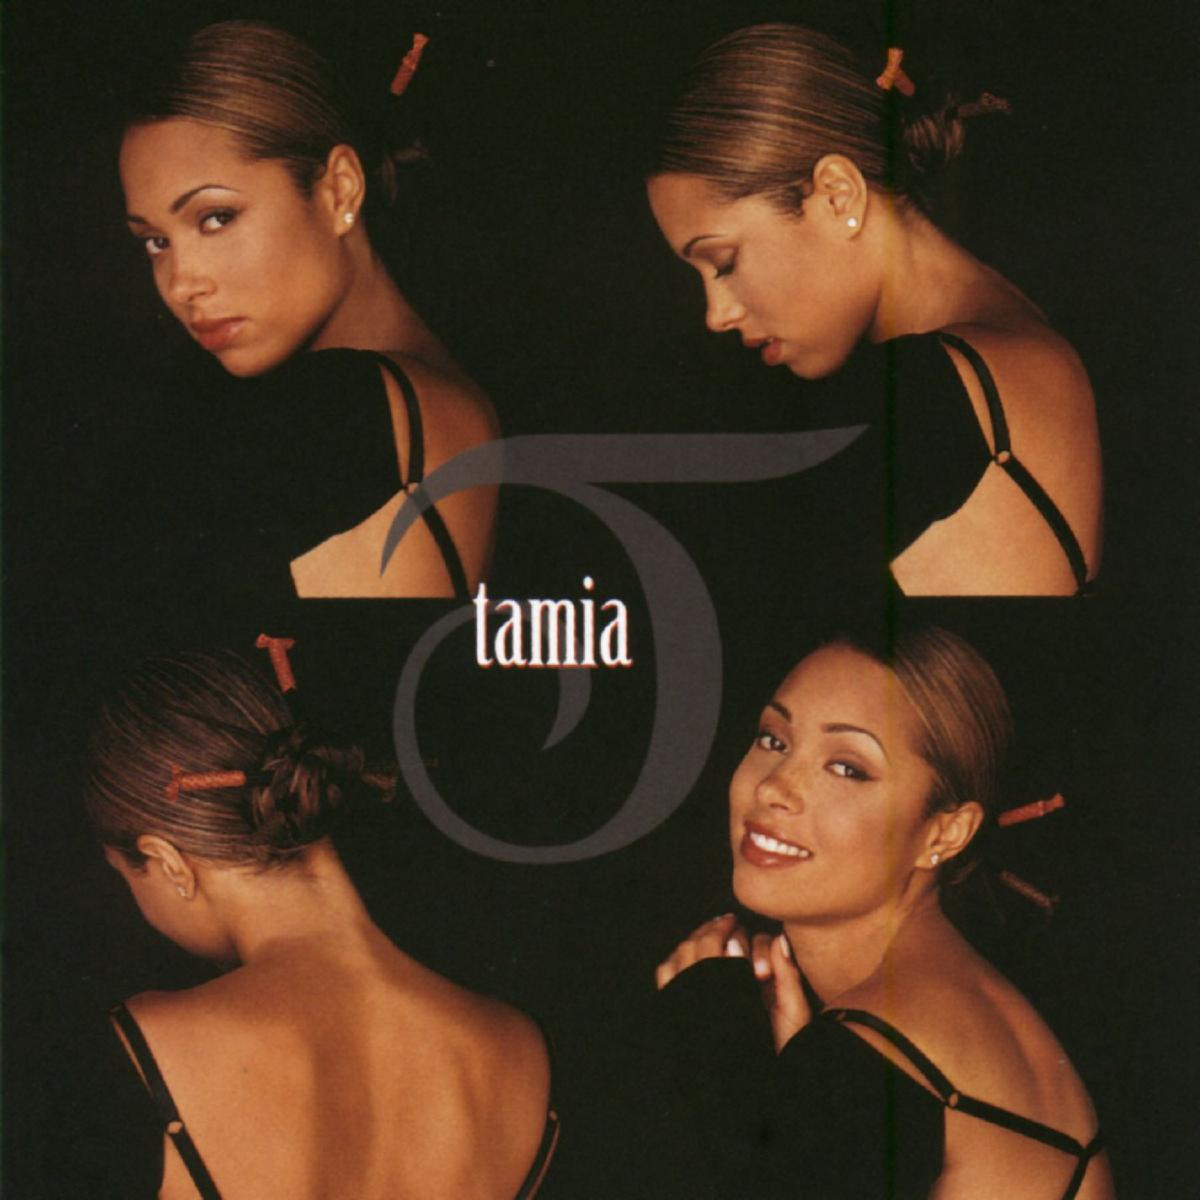 So Into You by Tamia